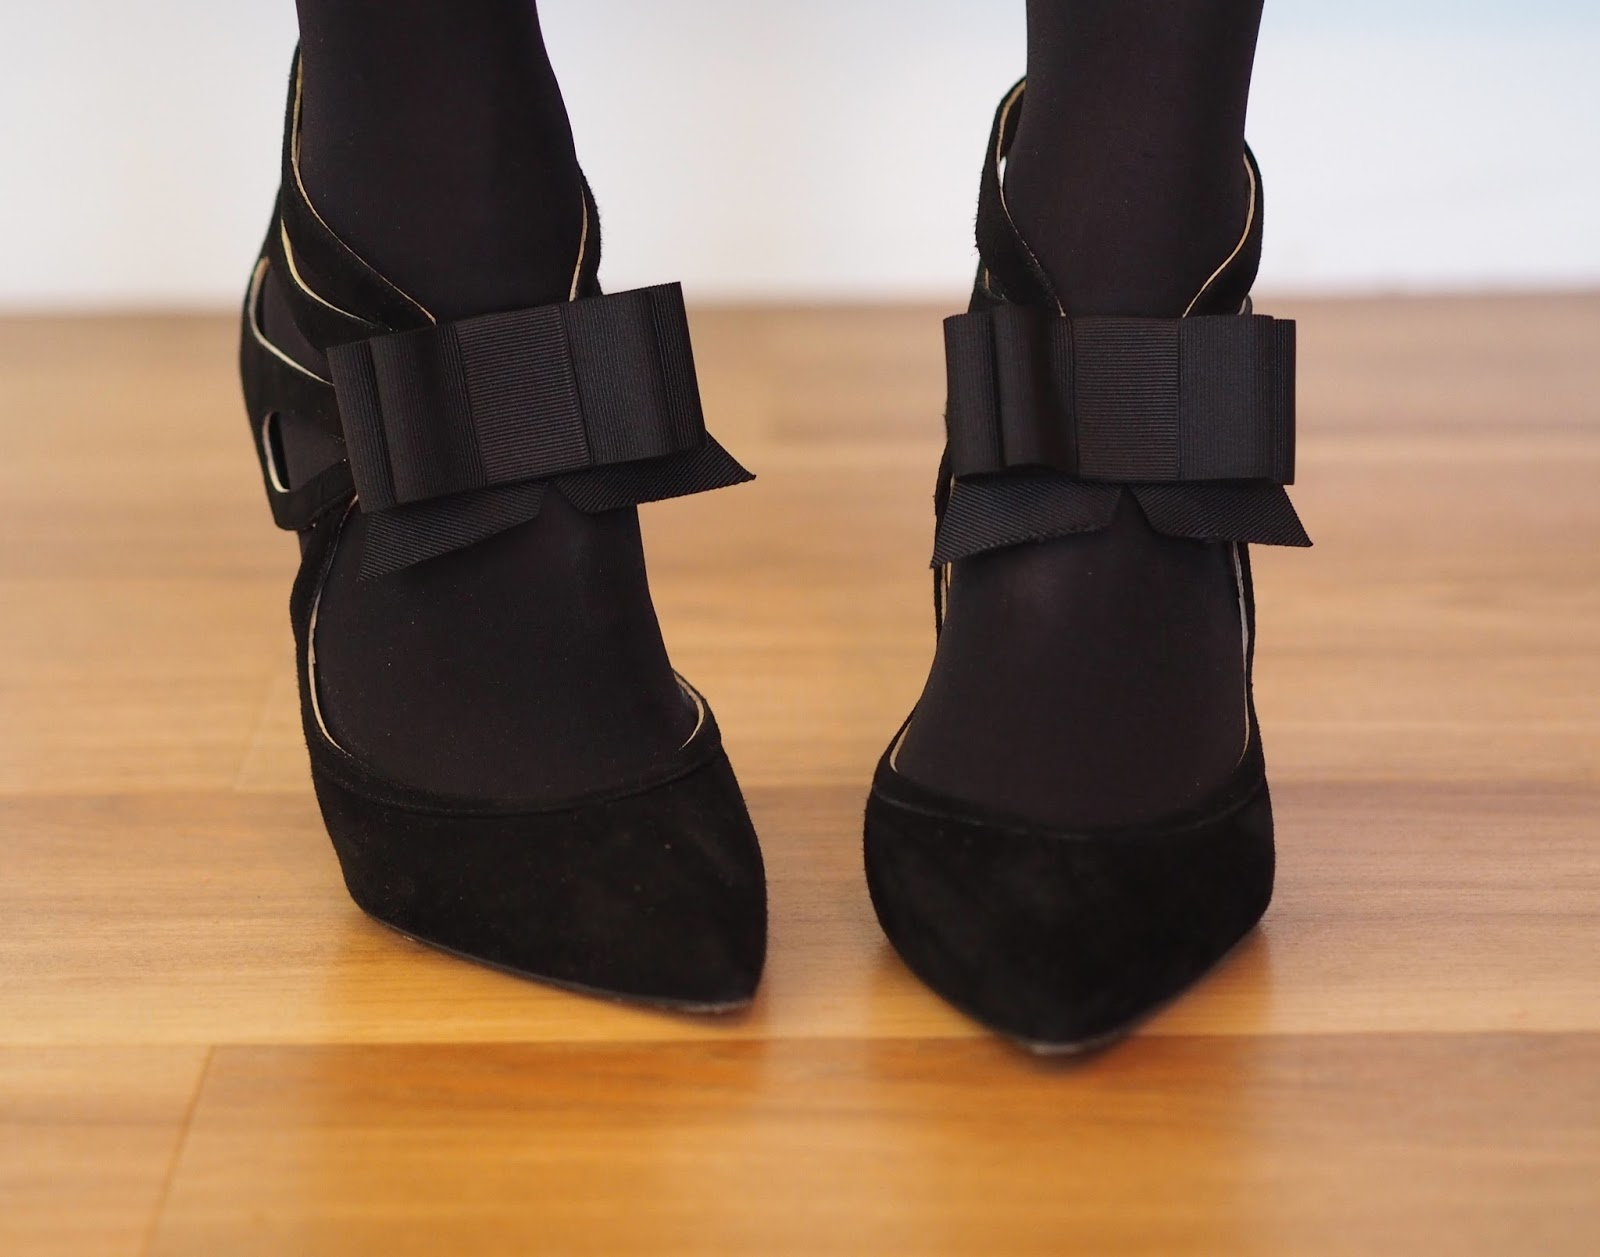 Boden Black bow high-heeled party shoes